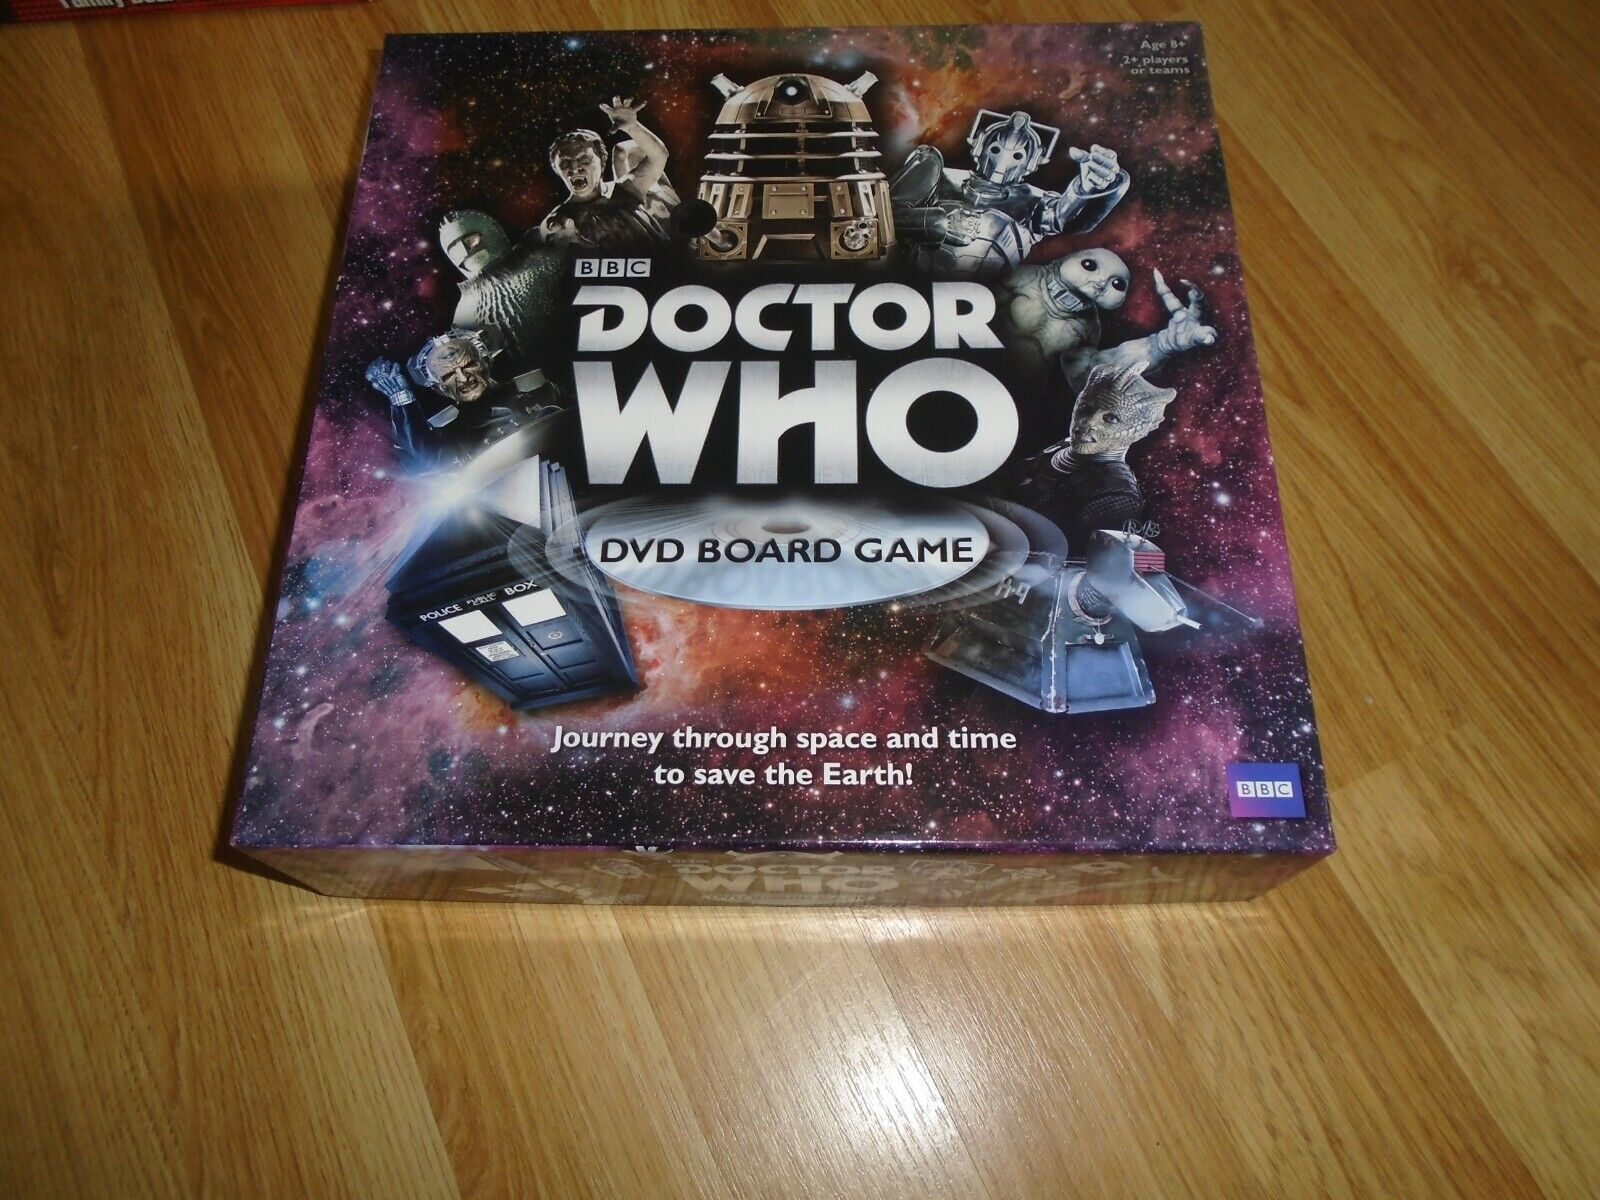 BBC DOCTOR WHO DVD BOARD GAME PAUL LAMOND GAMES